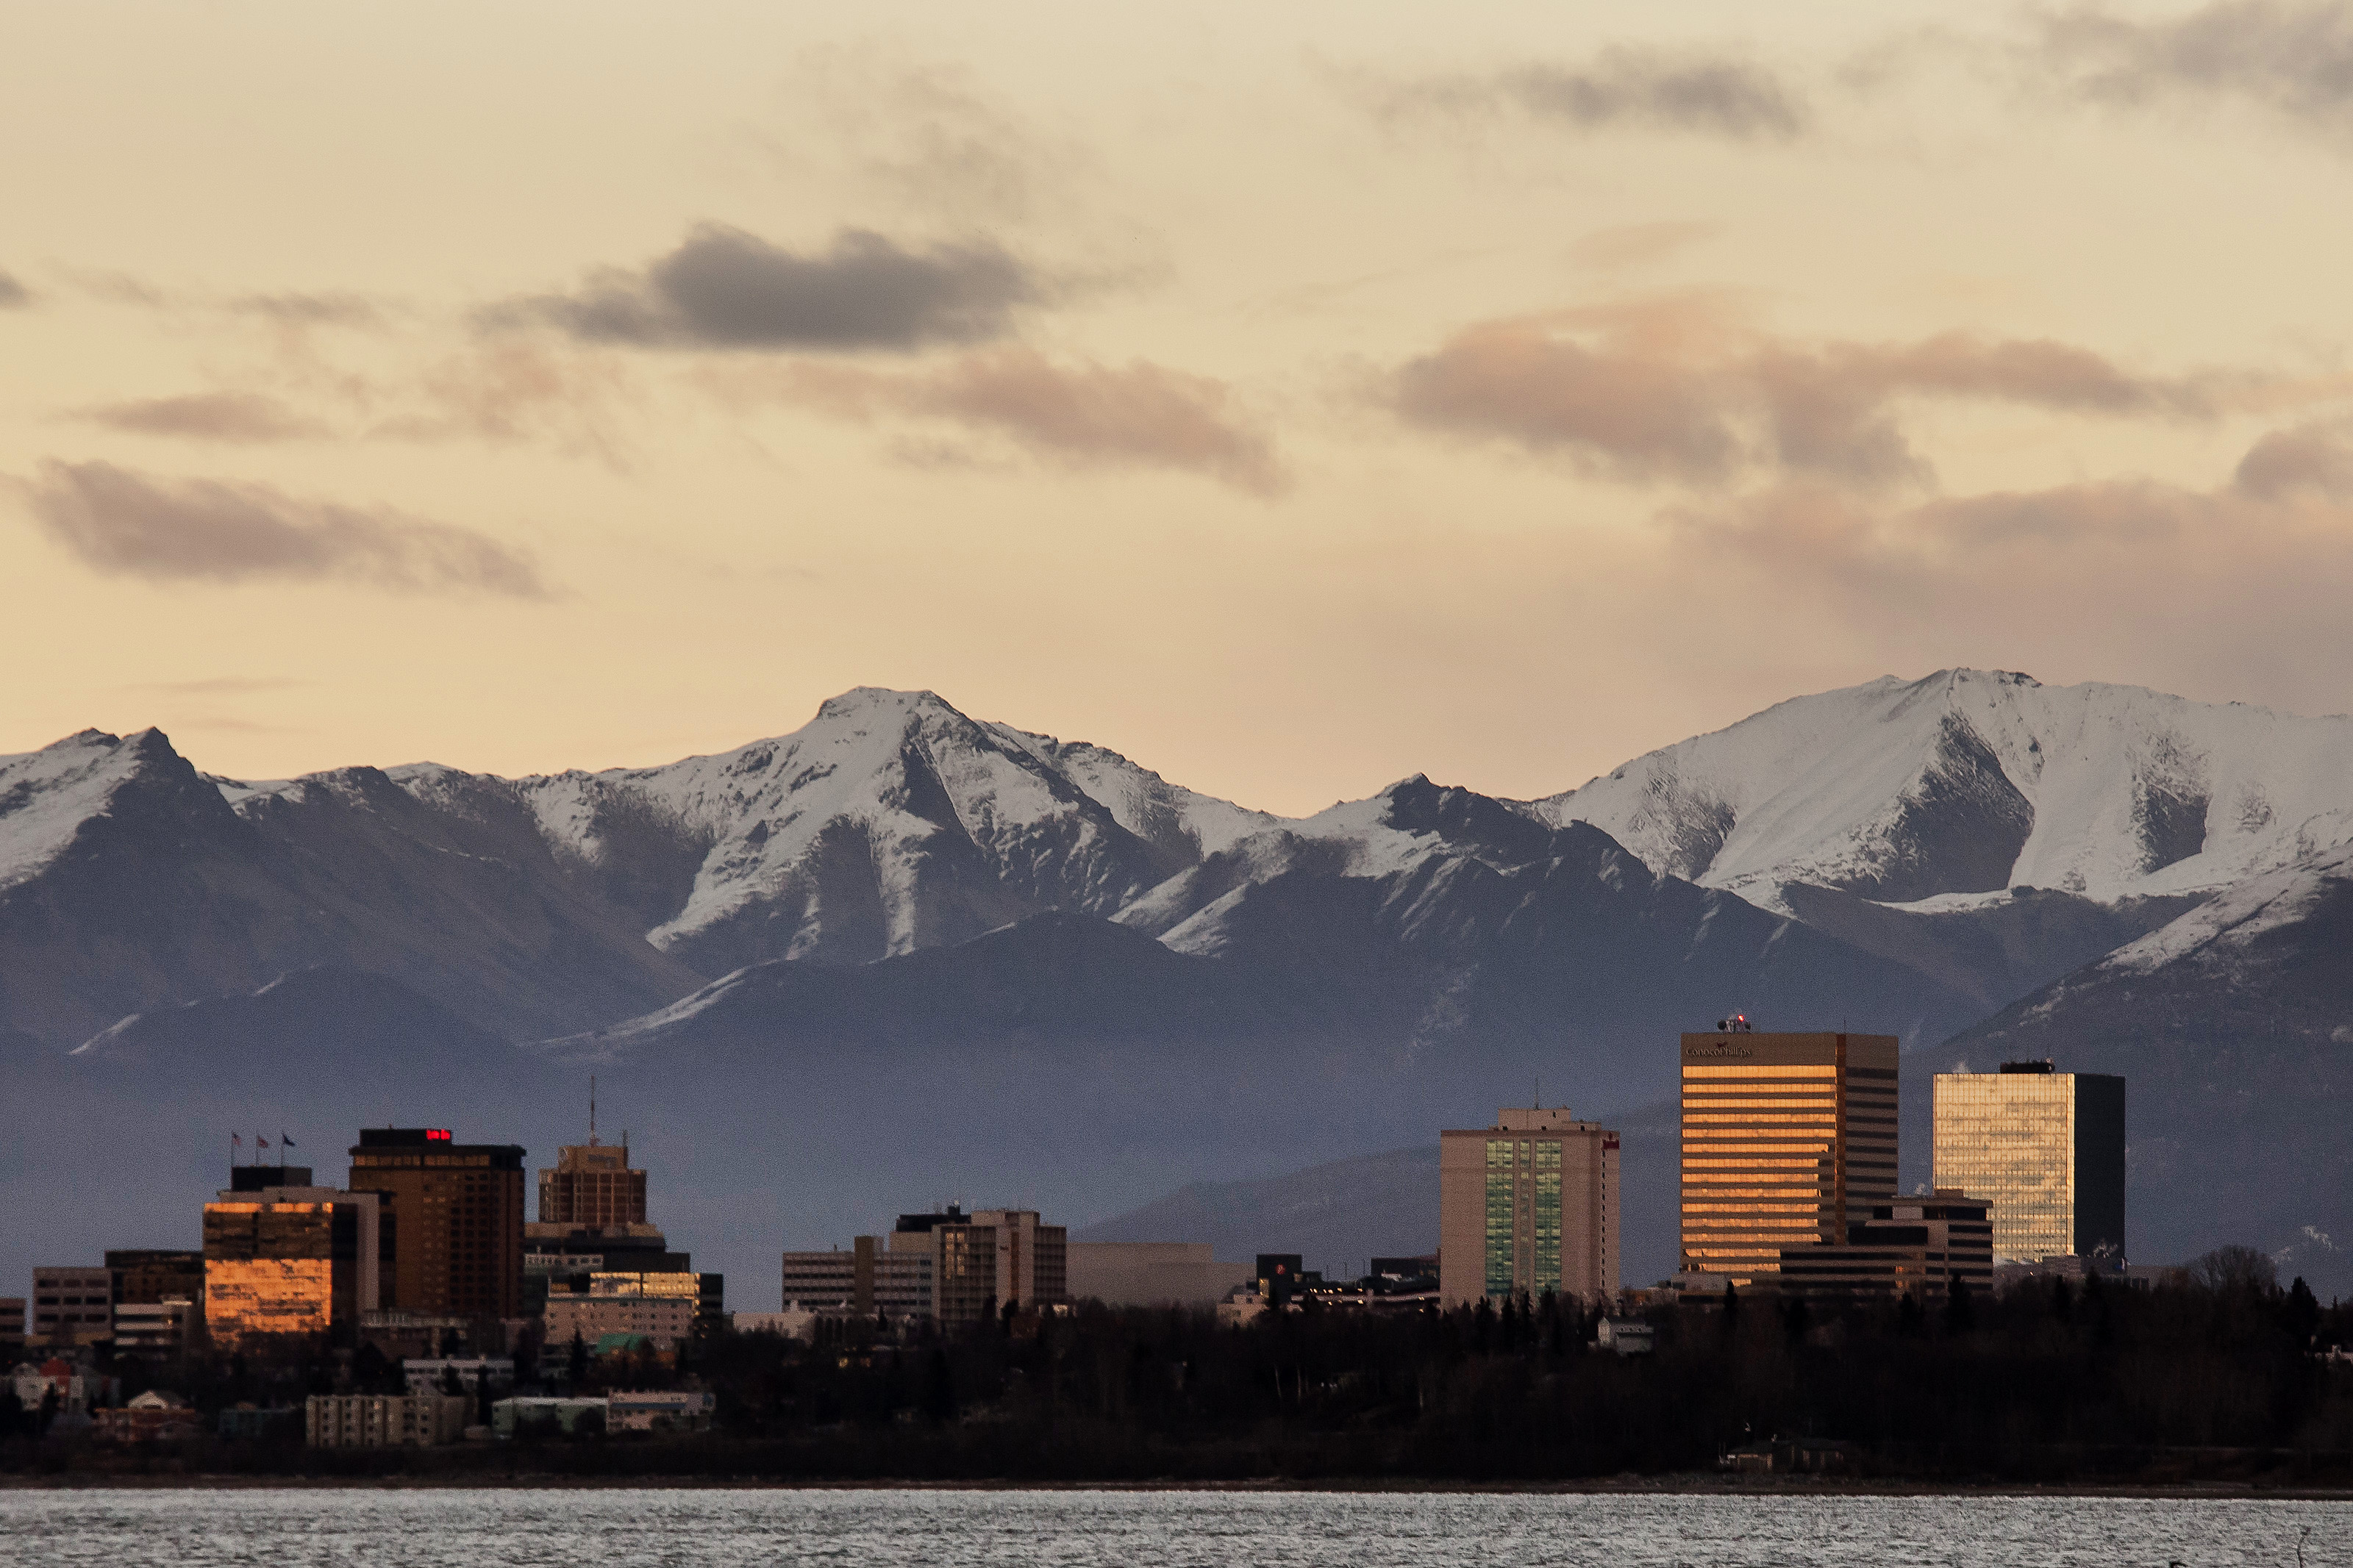 Sunlight reflects off buildings in downtown Anchorage on Nov. 5, 2014. Alaskan cities advertise lifestyle perks to draw new talent. (MUST CREDIT: Bloomberg photo by David Ryder)